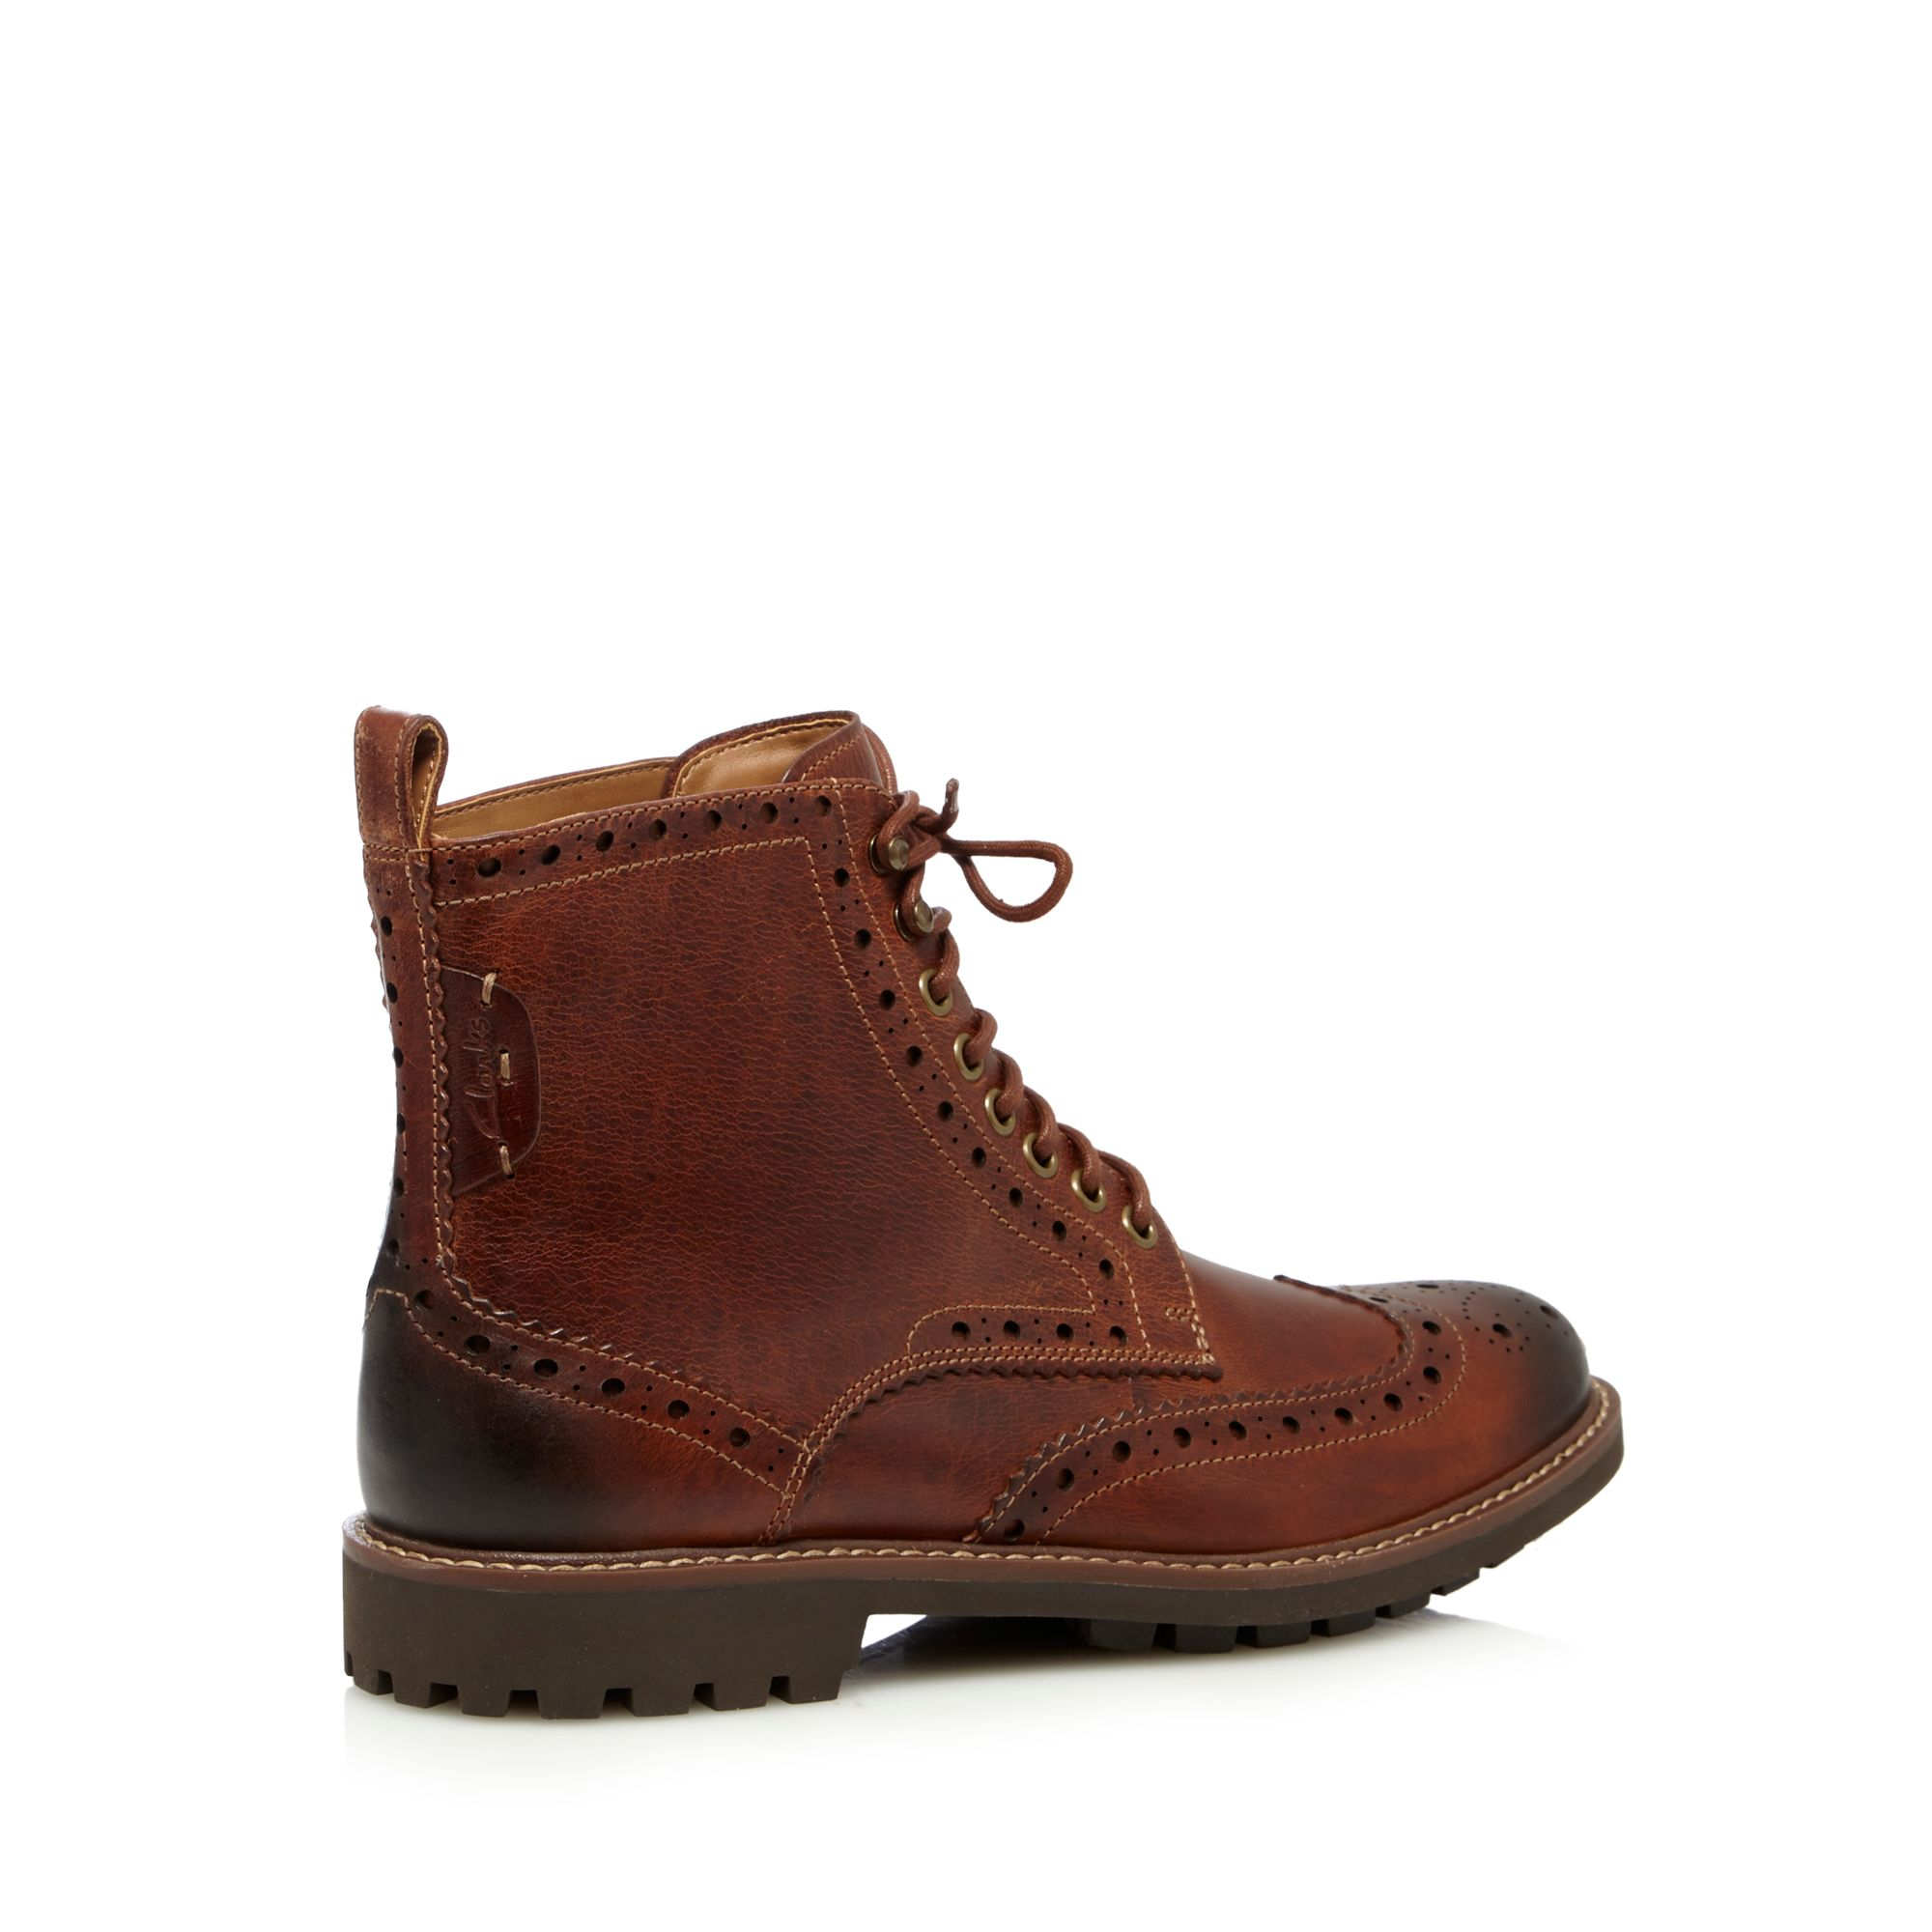 clarks mens brown leather montacute lord brogue boots